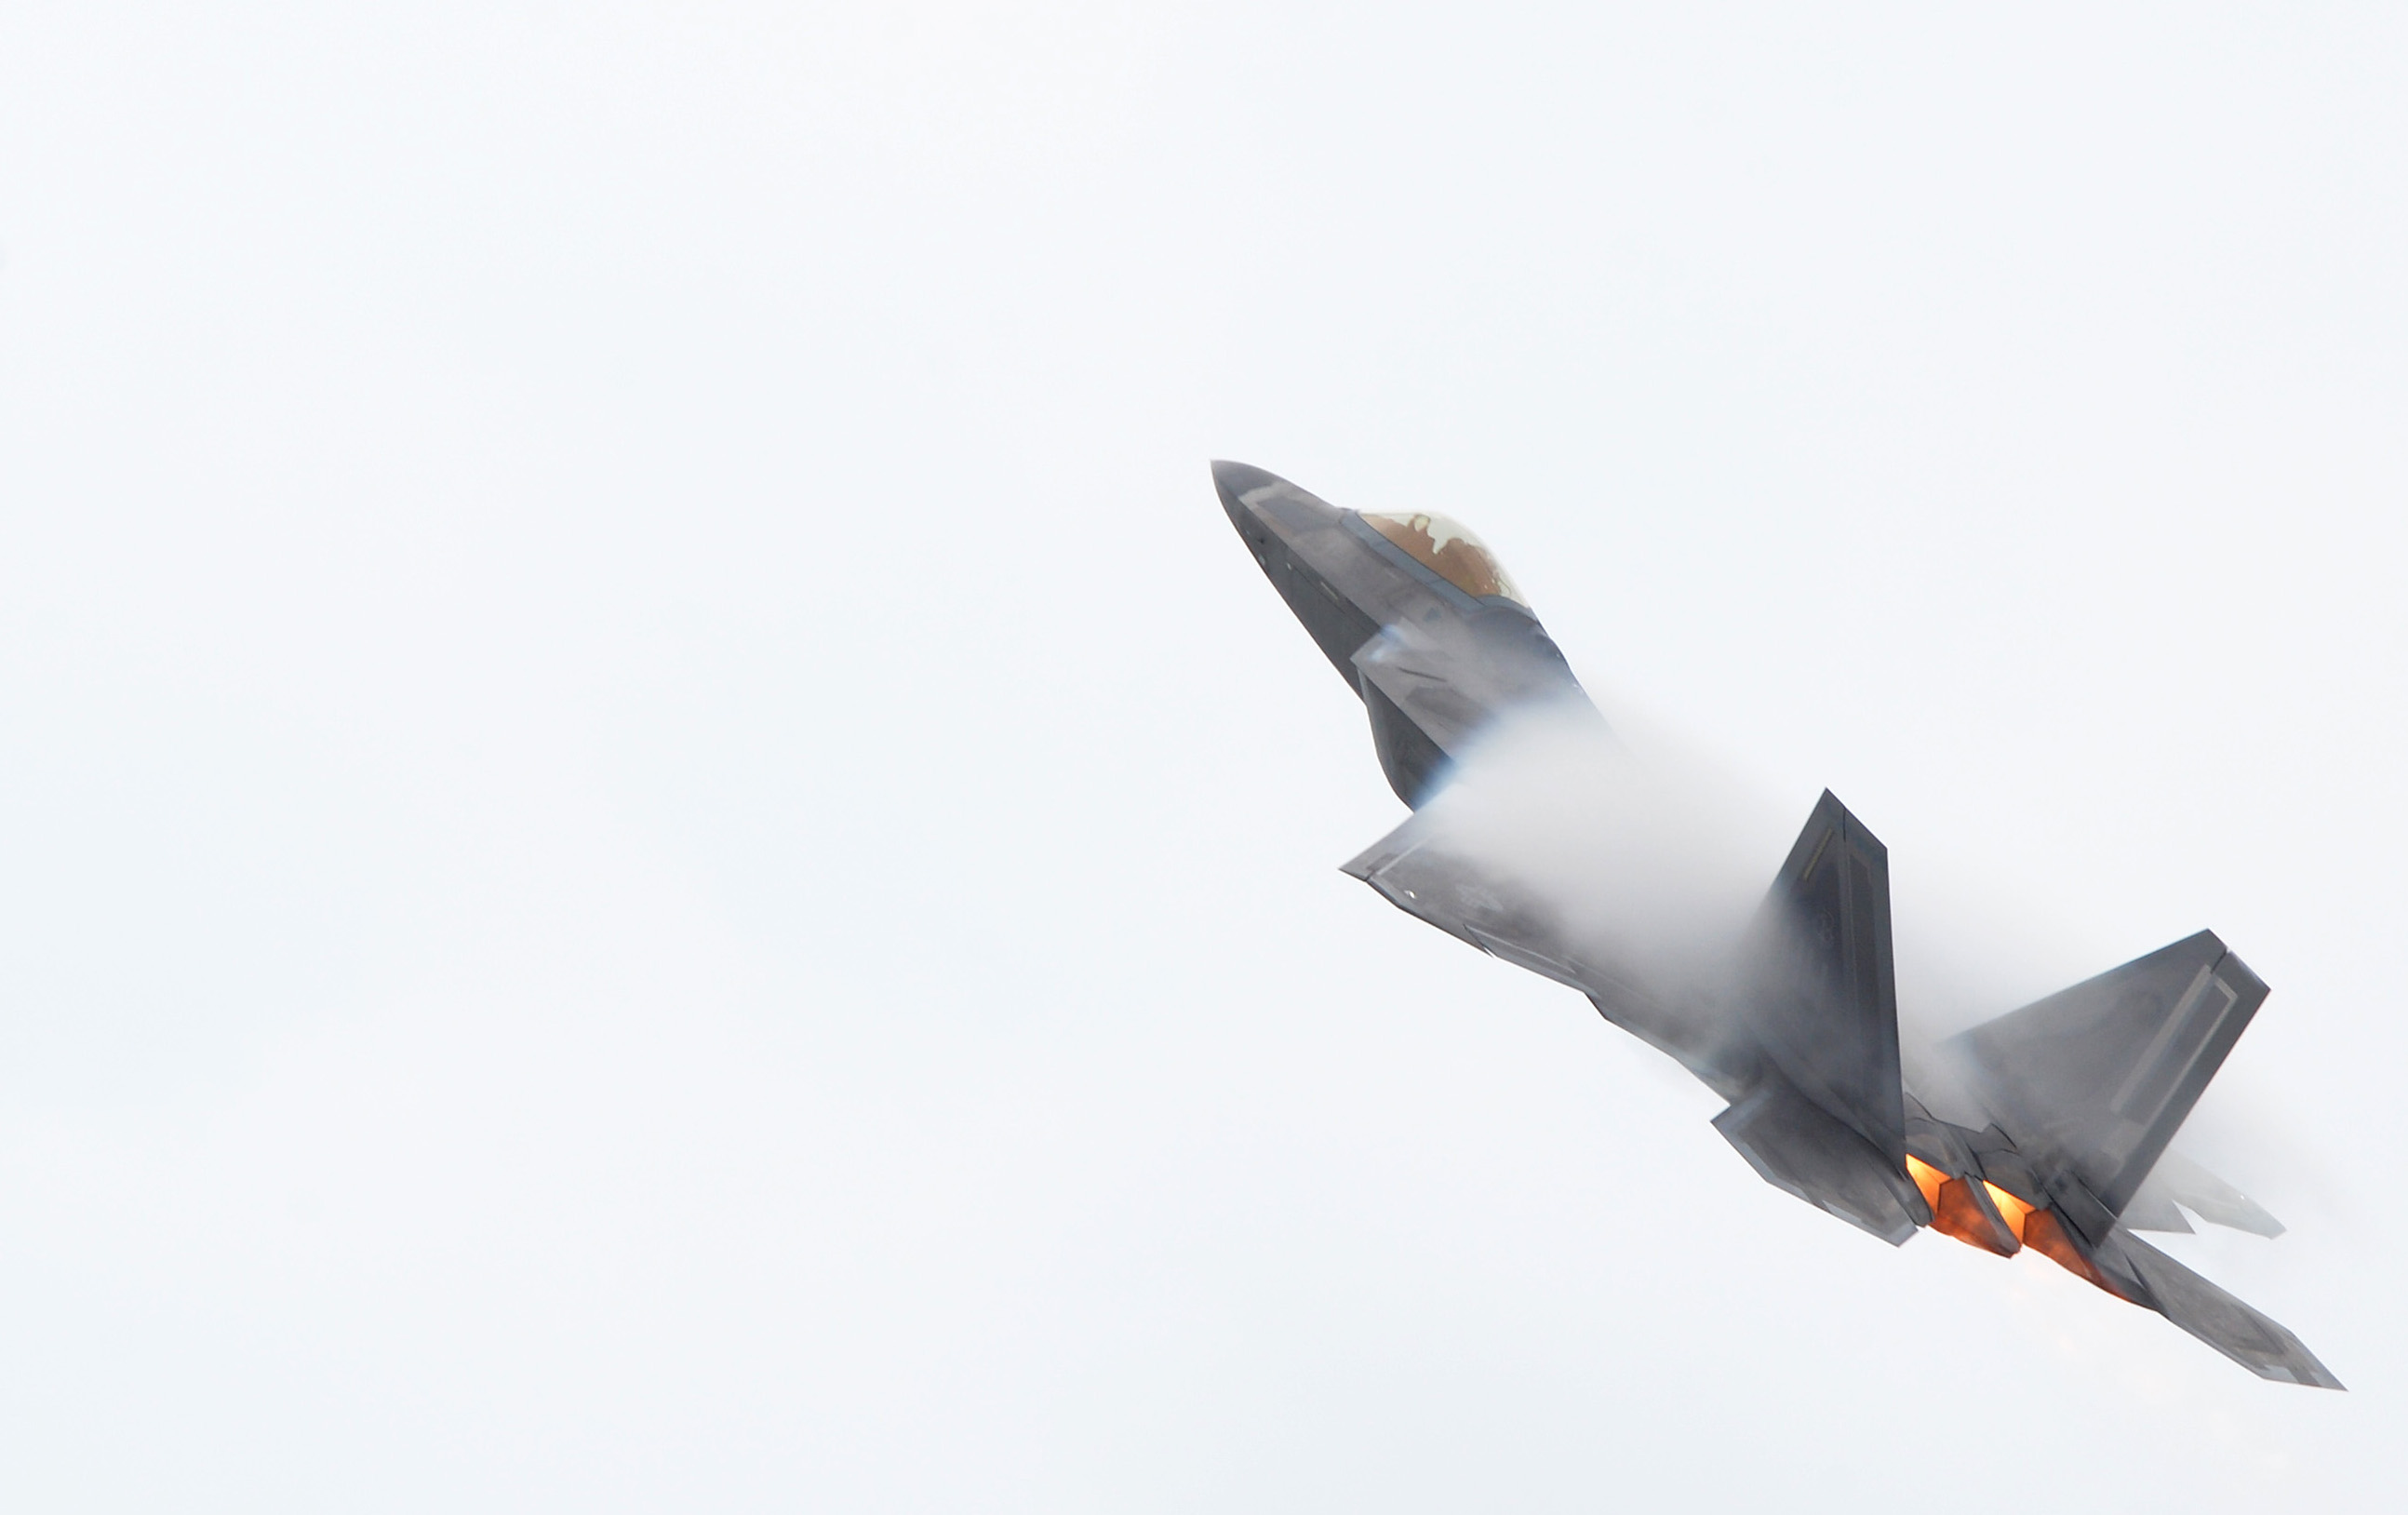 F-22 Raptor takes off for a training mission at Joint Base Pearl Harbor-Hickam on May 16, 2014. US Air Force Photo